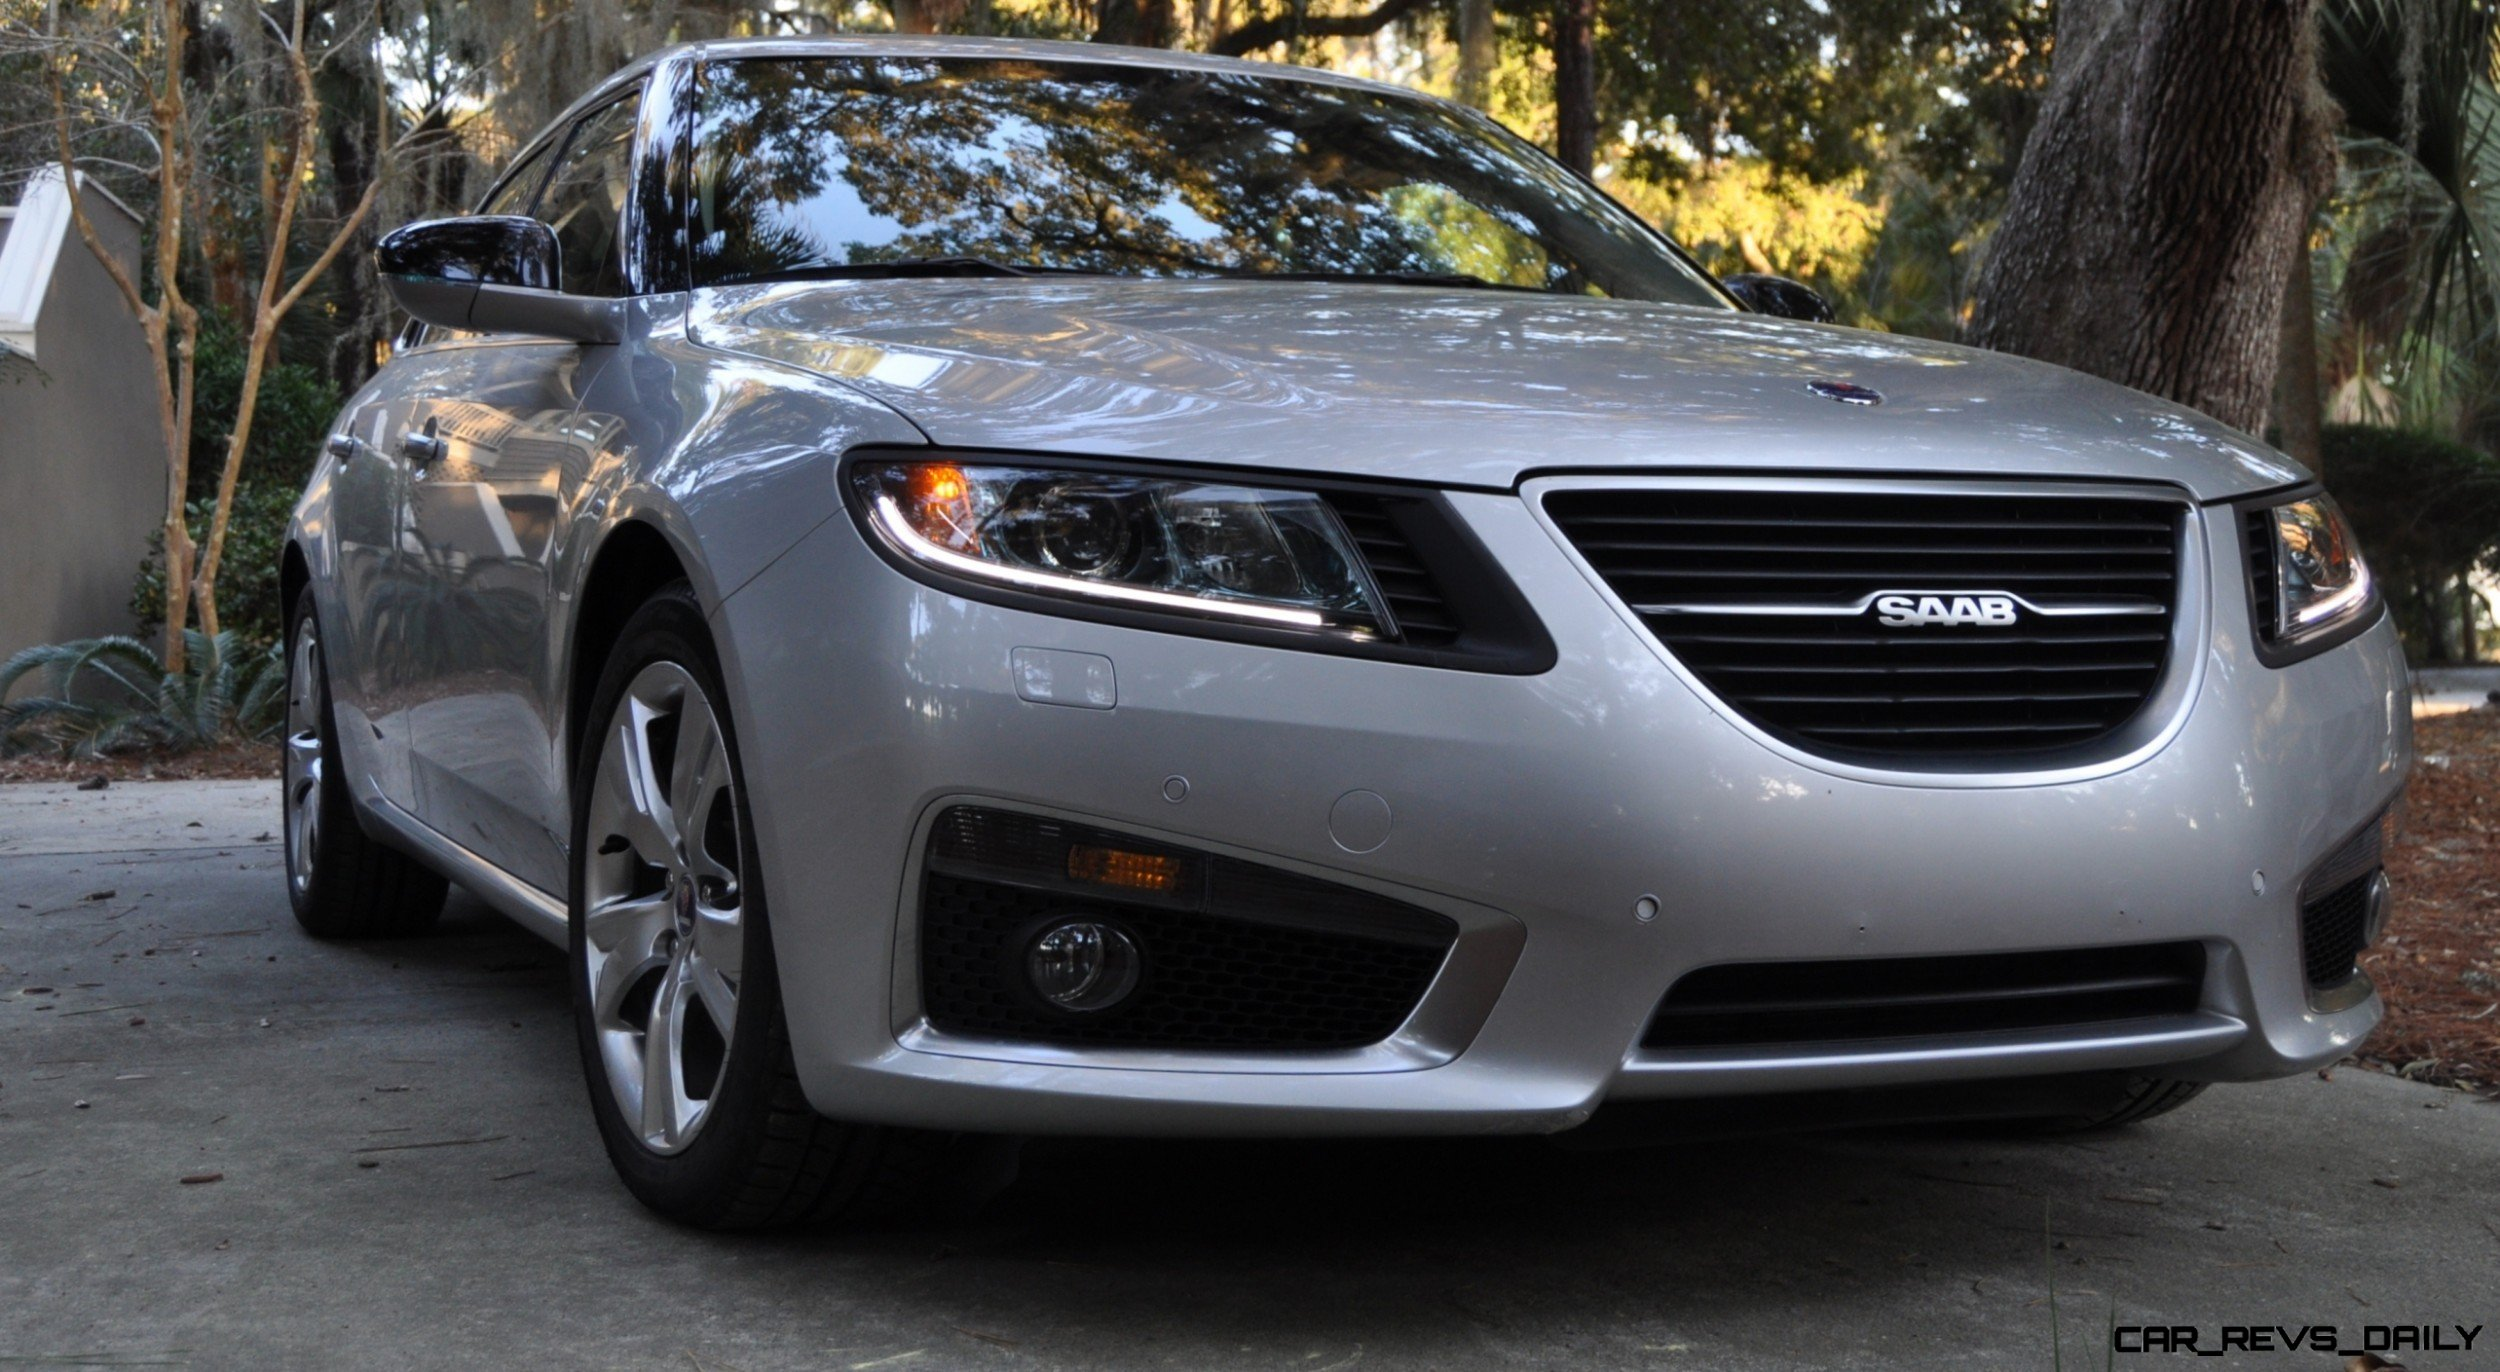 2013 SAAB 9-5 Turbo6 XWD Aero -- 48 HQ Photos -- The Coolest AWD, Turbo V6 Limo You Cannot Buy 5